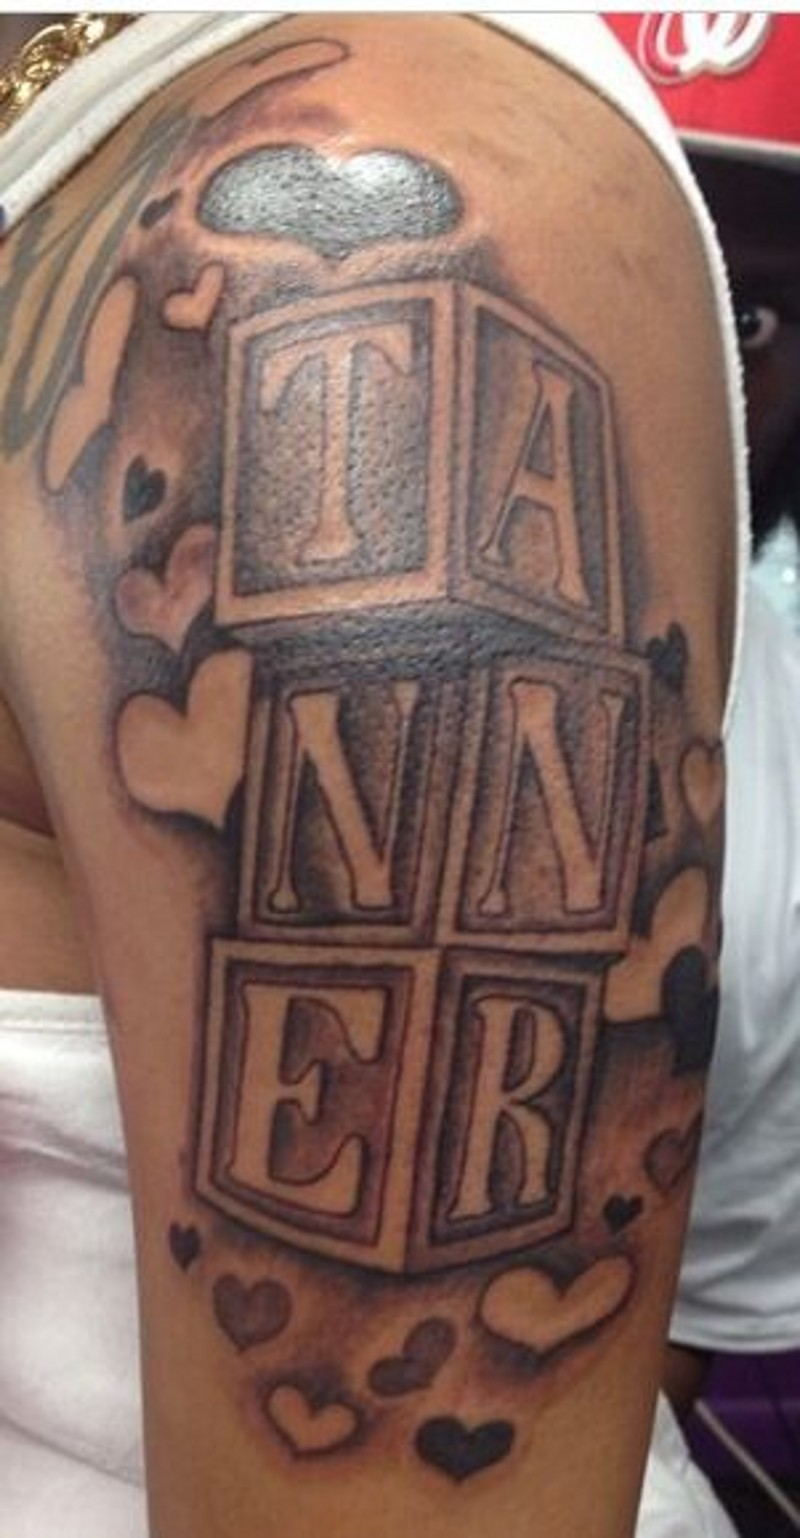 Unusual black ink big cubes with letters tattoo on shoulder stylized with hearts